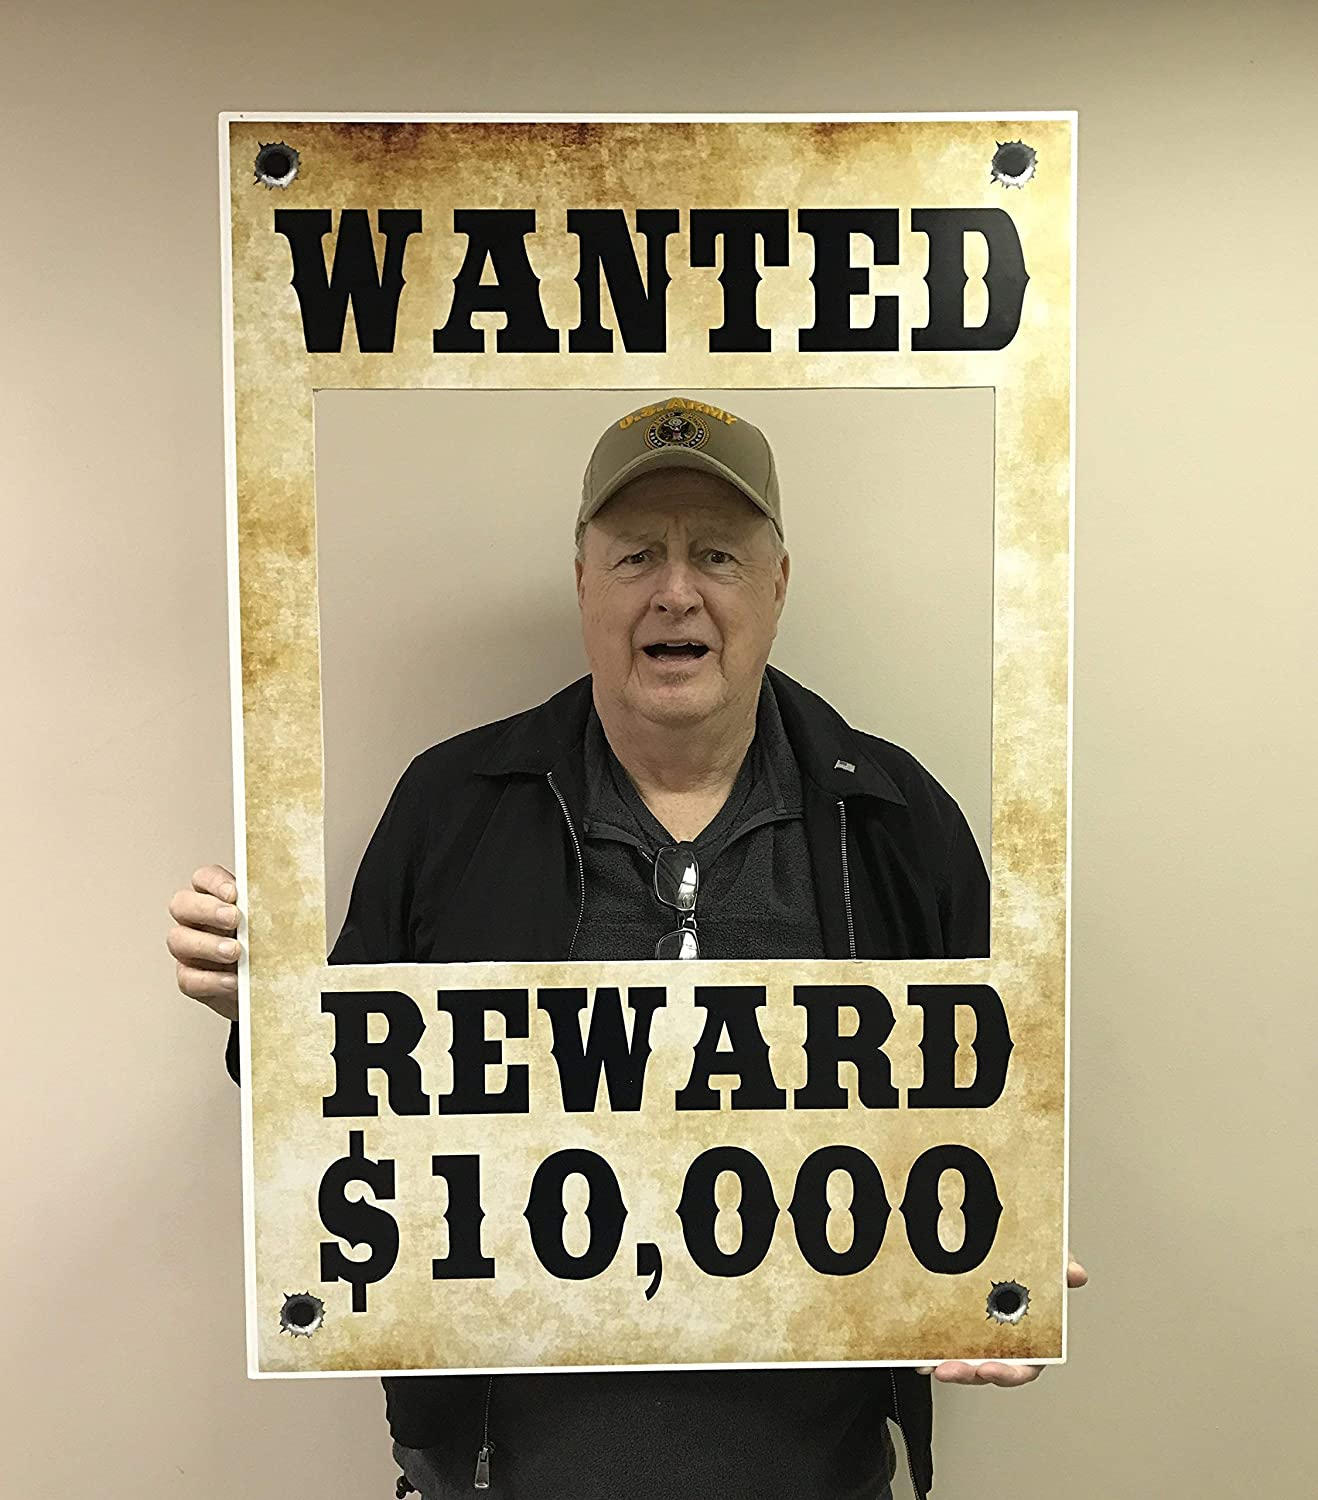 Wanted Wild West $10,000 Reward Selfie Frame Photo Booth Prop Poster